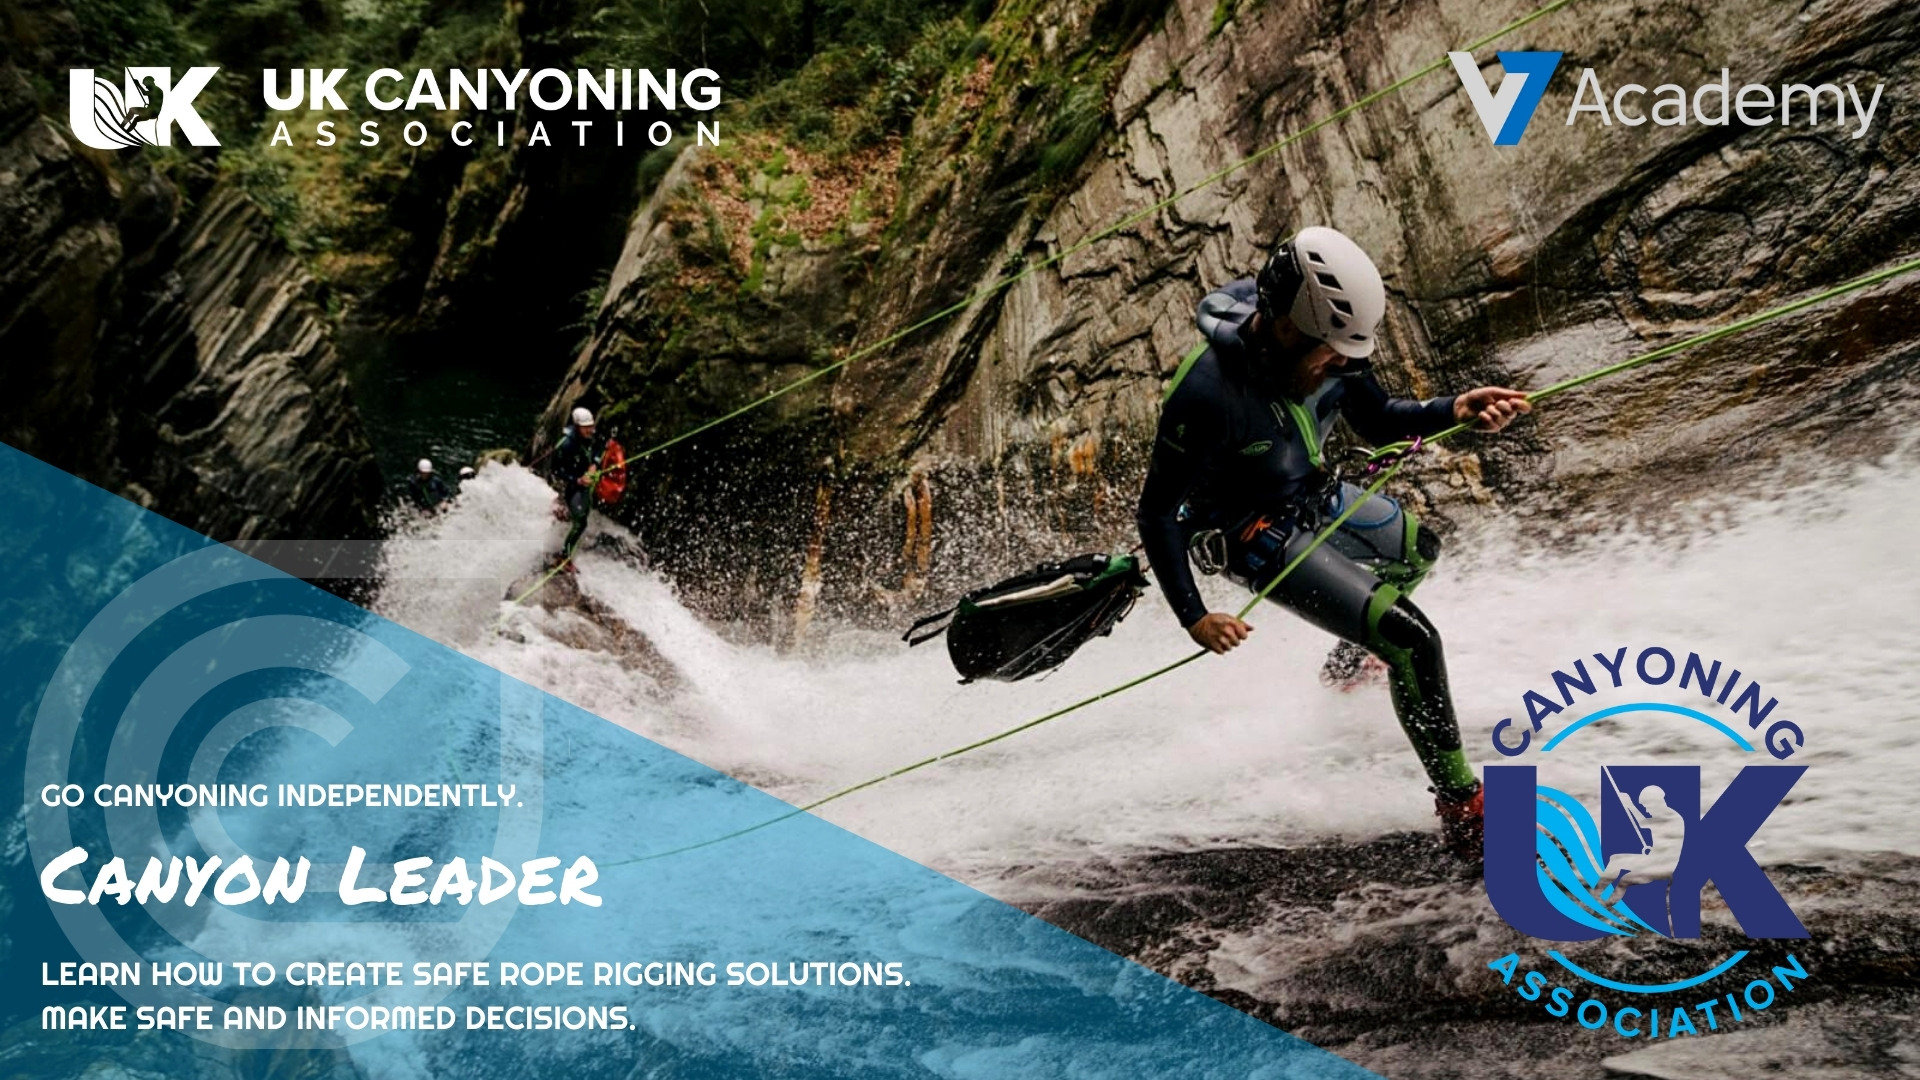 canyon leader training course